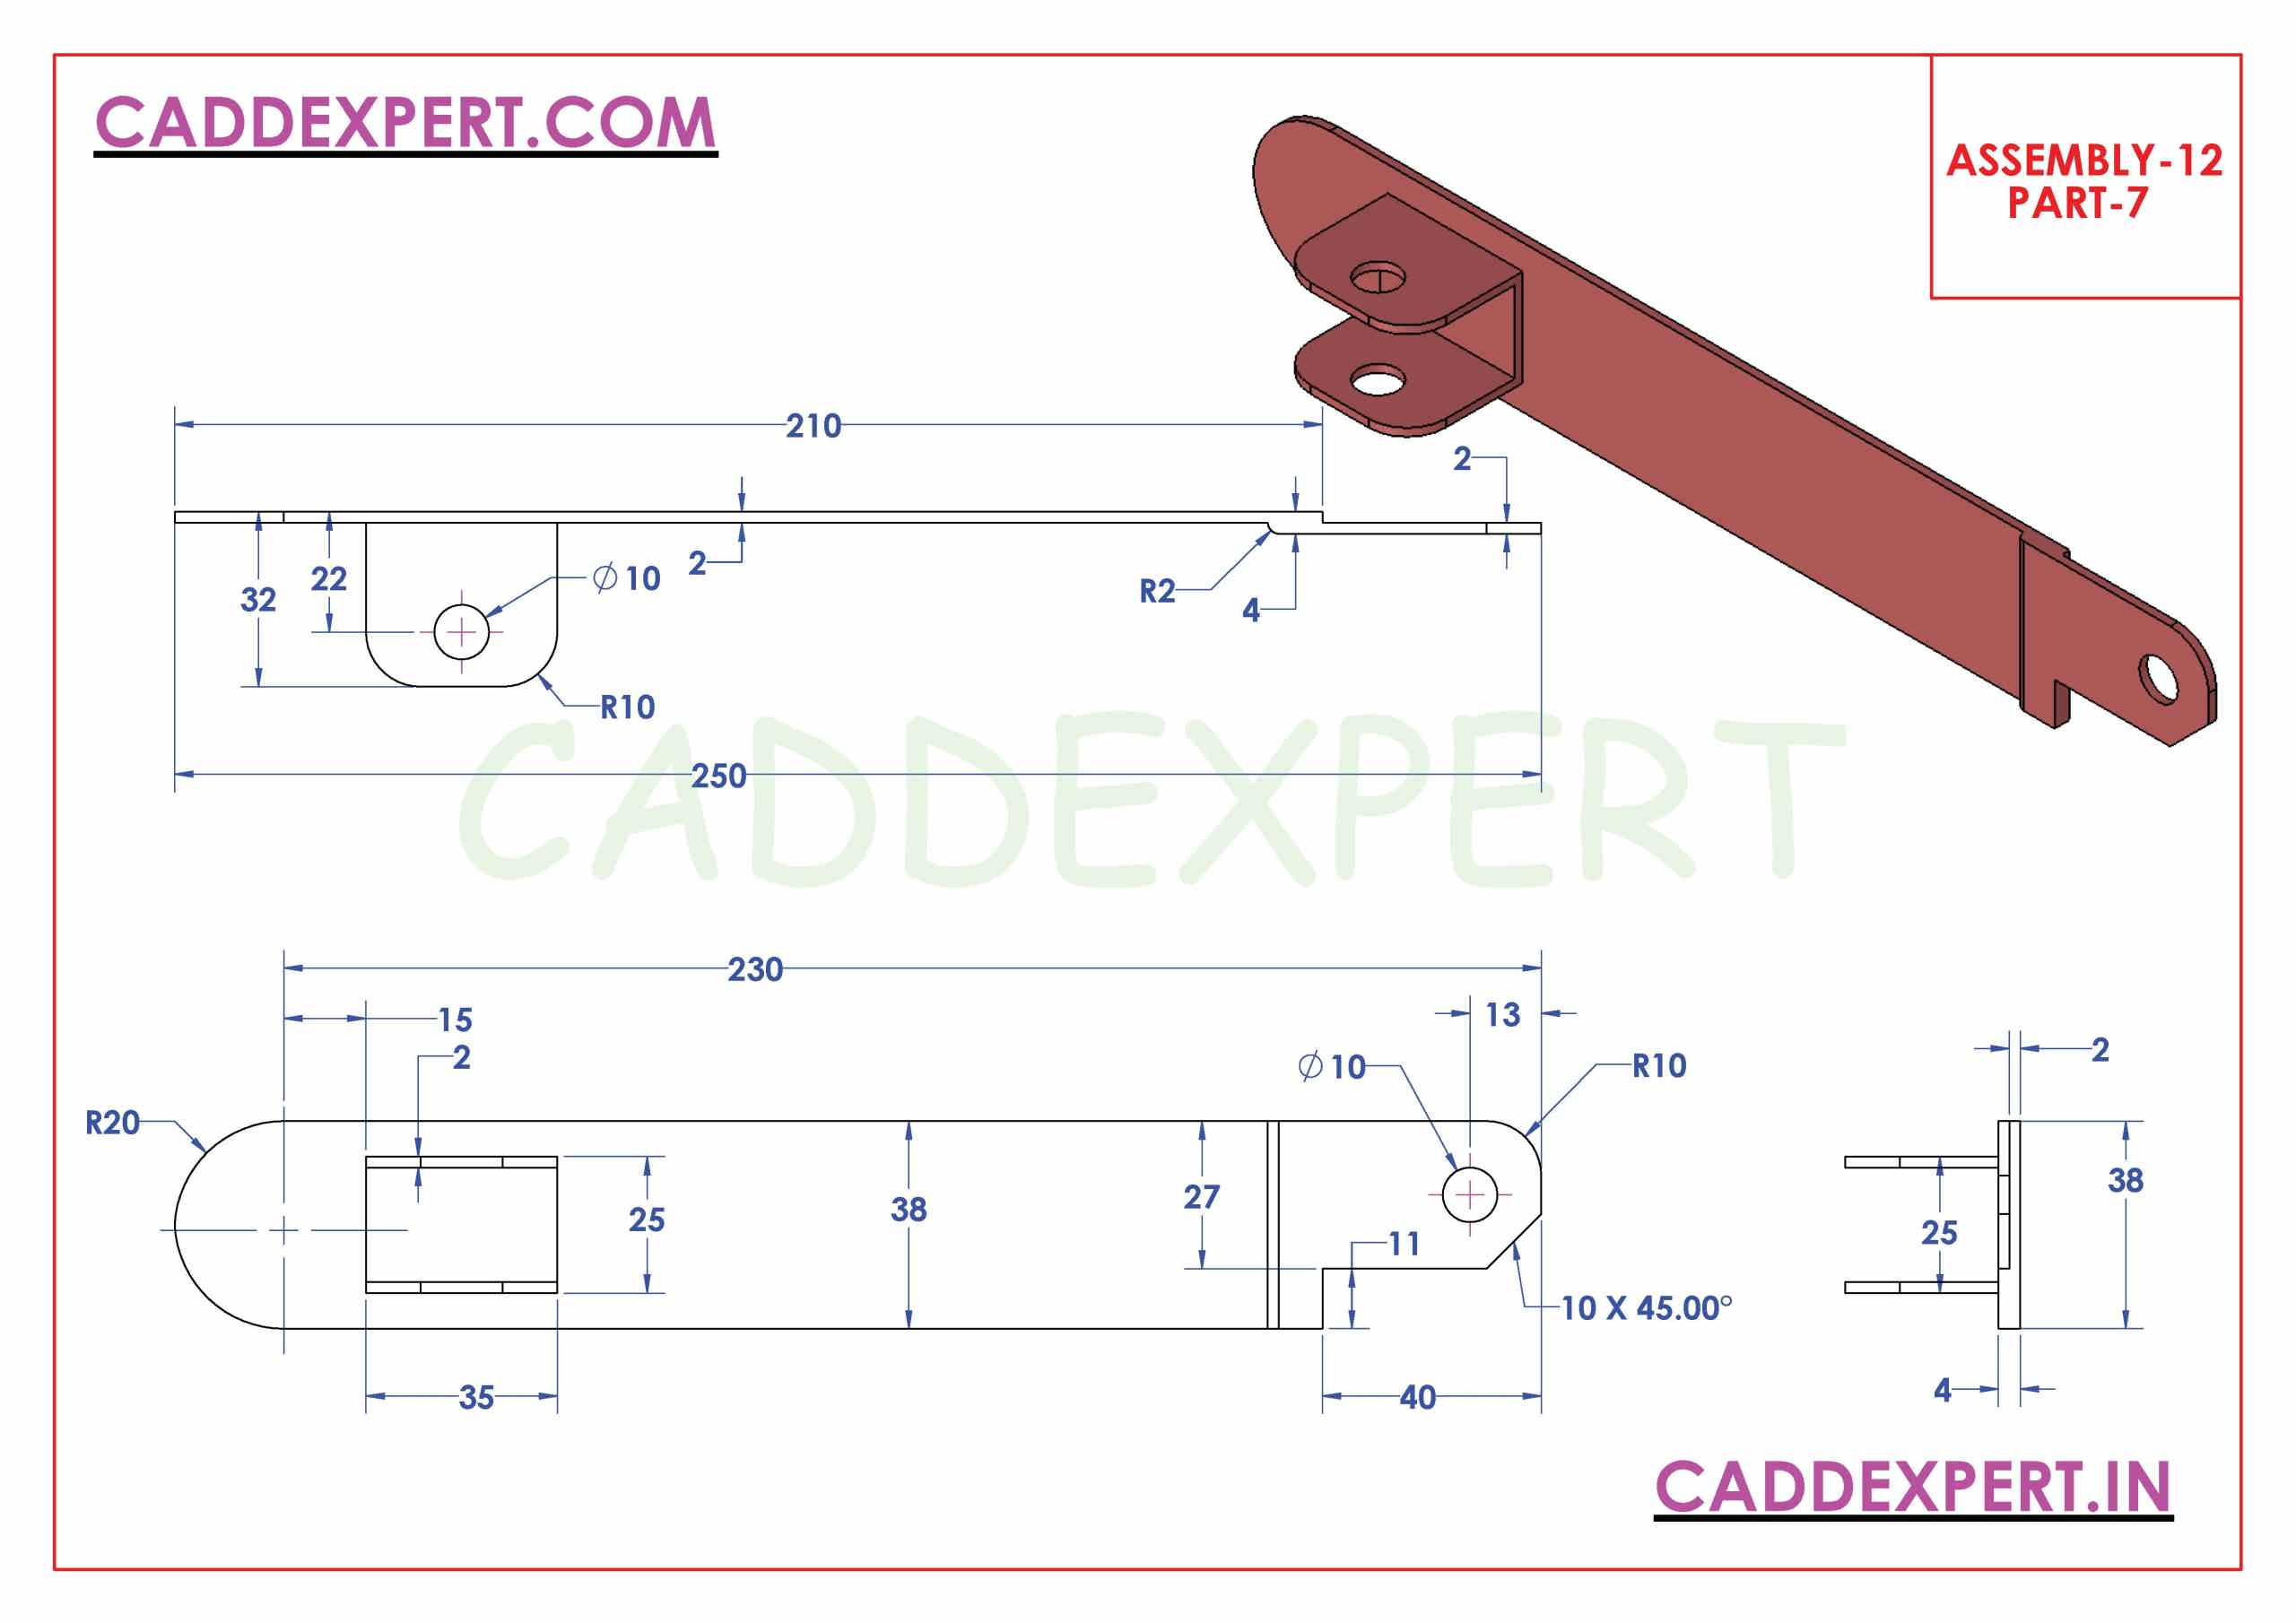 SOLIDWORKS ASSEMBLY JACK SCREW PART - 7